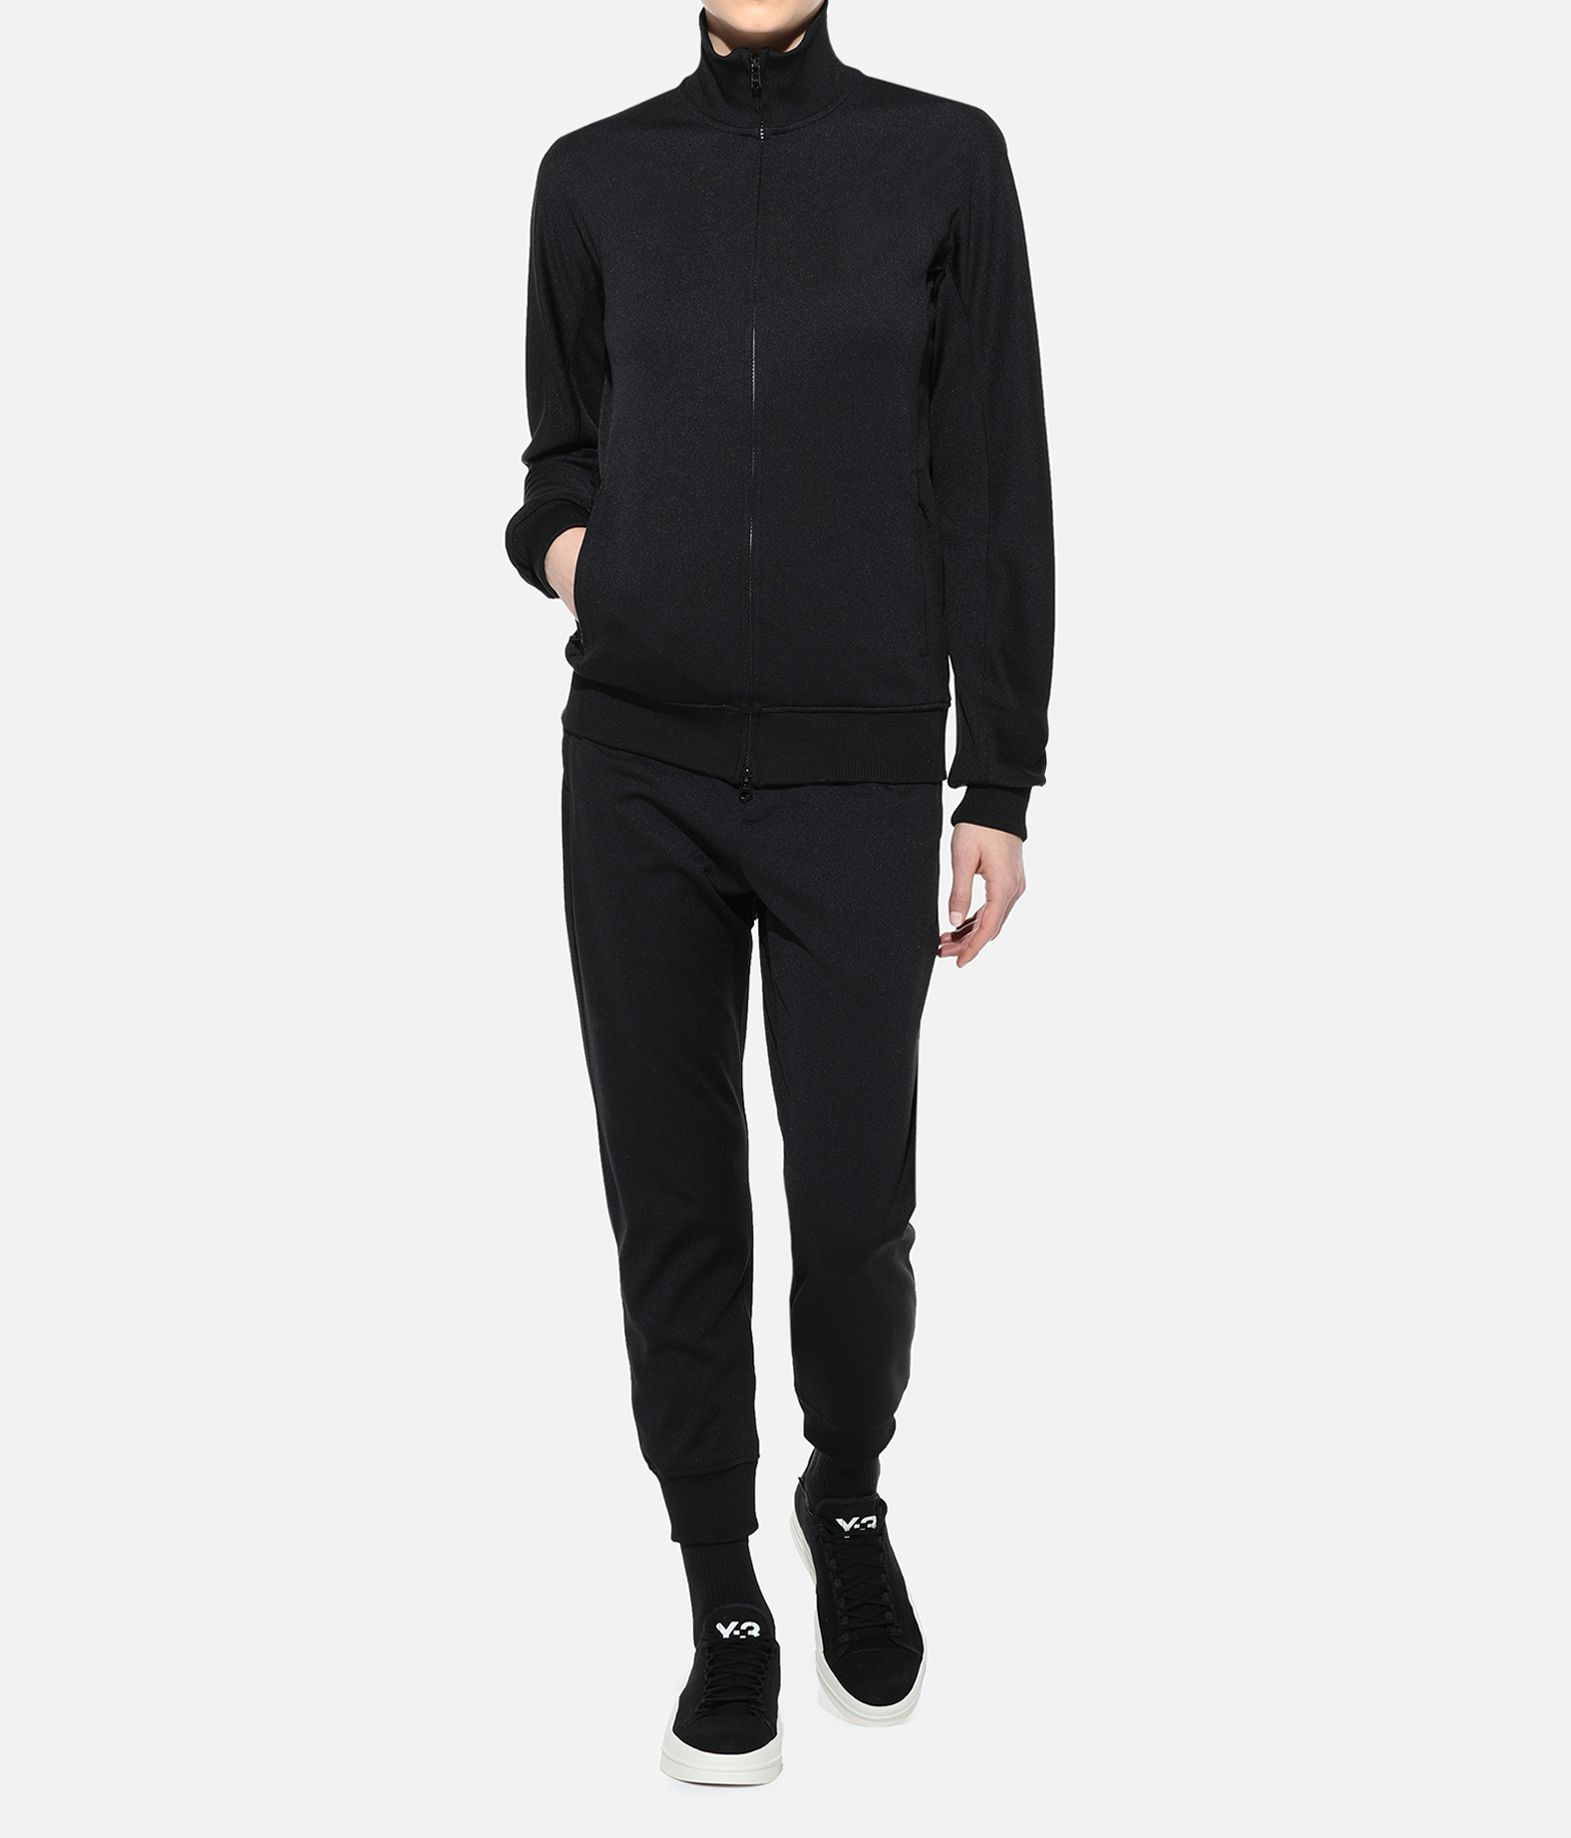 Y-3 Y-3 Classic Track Pants Track pant Woman a